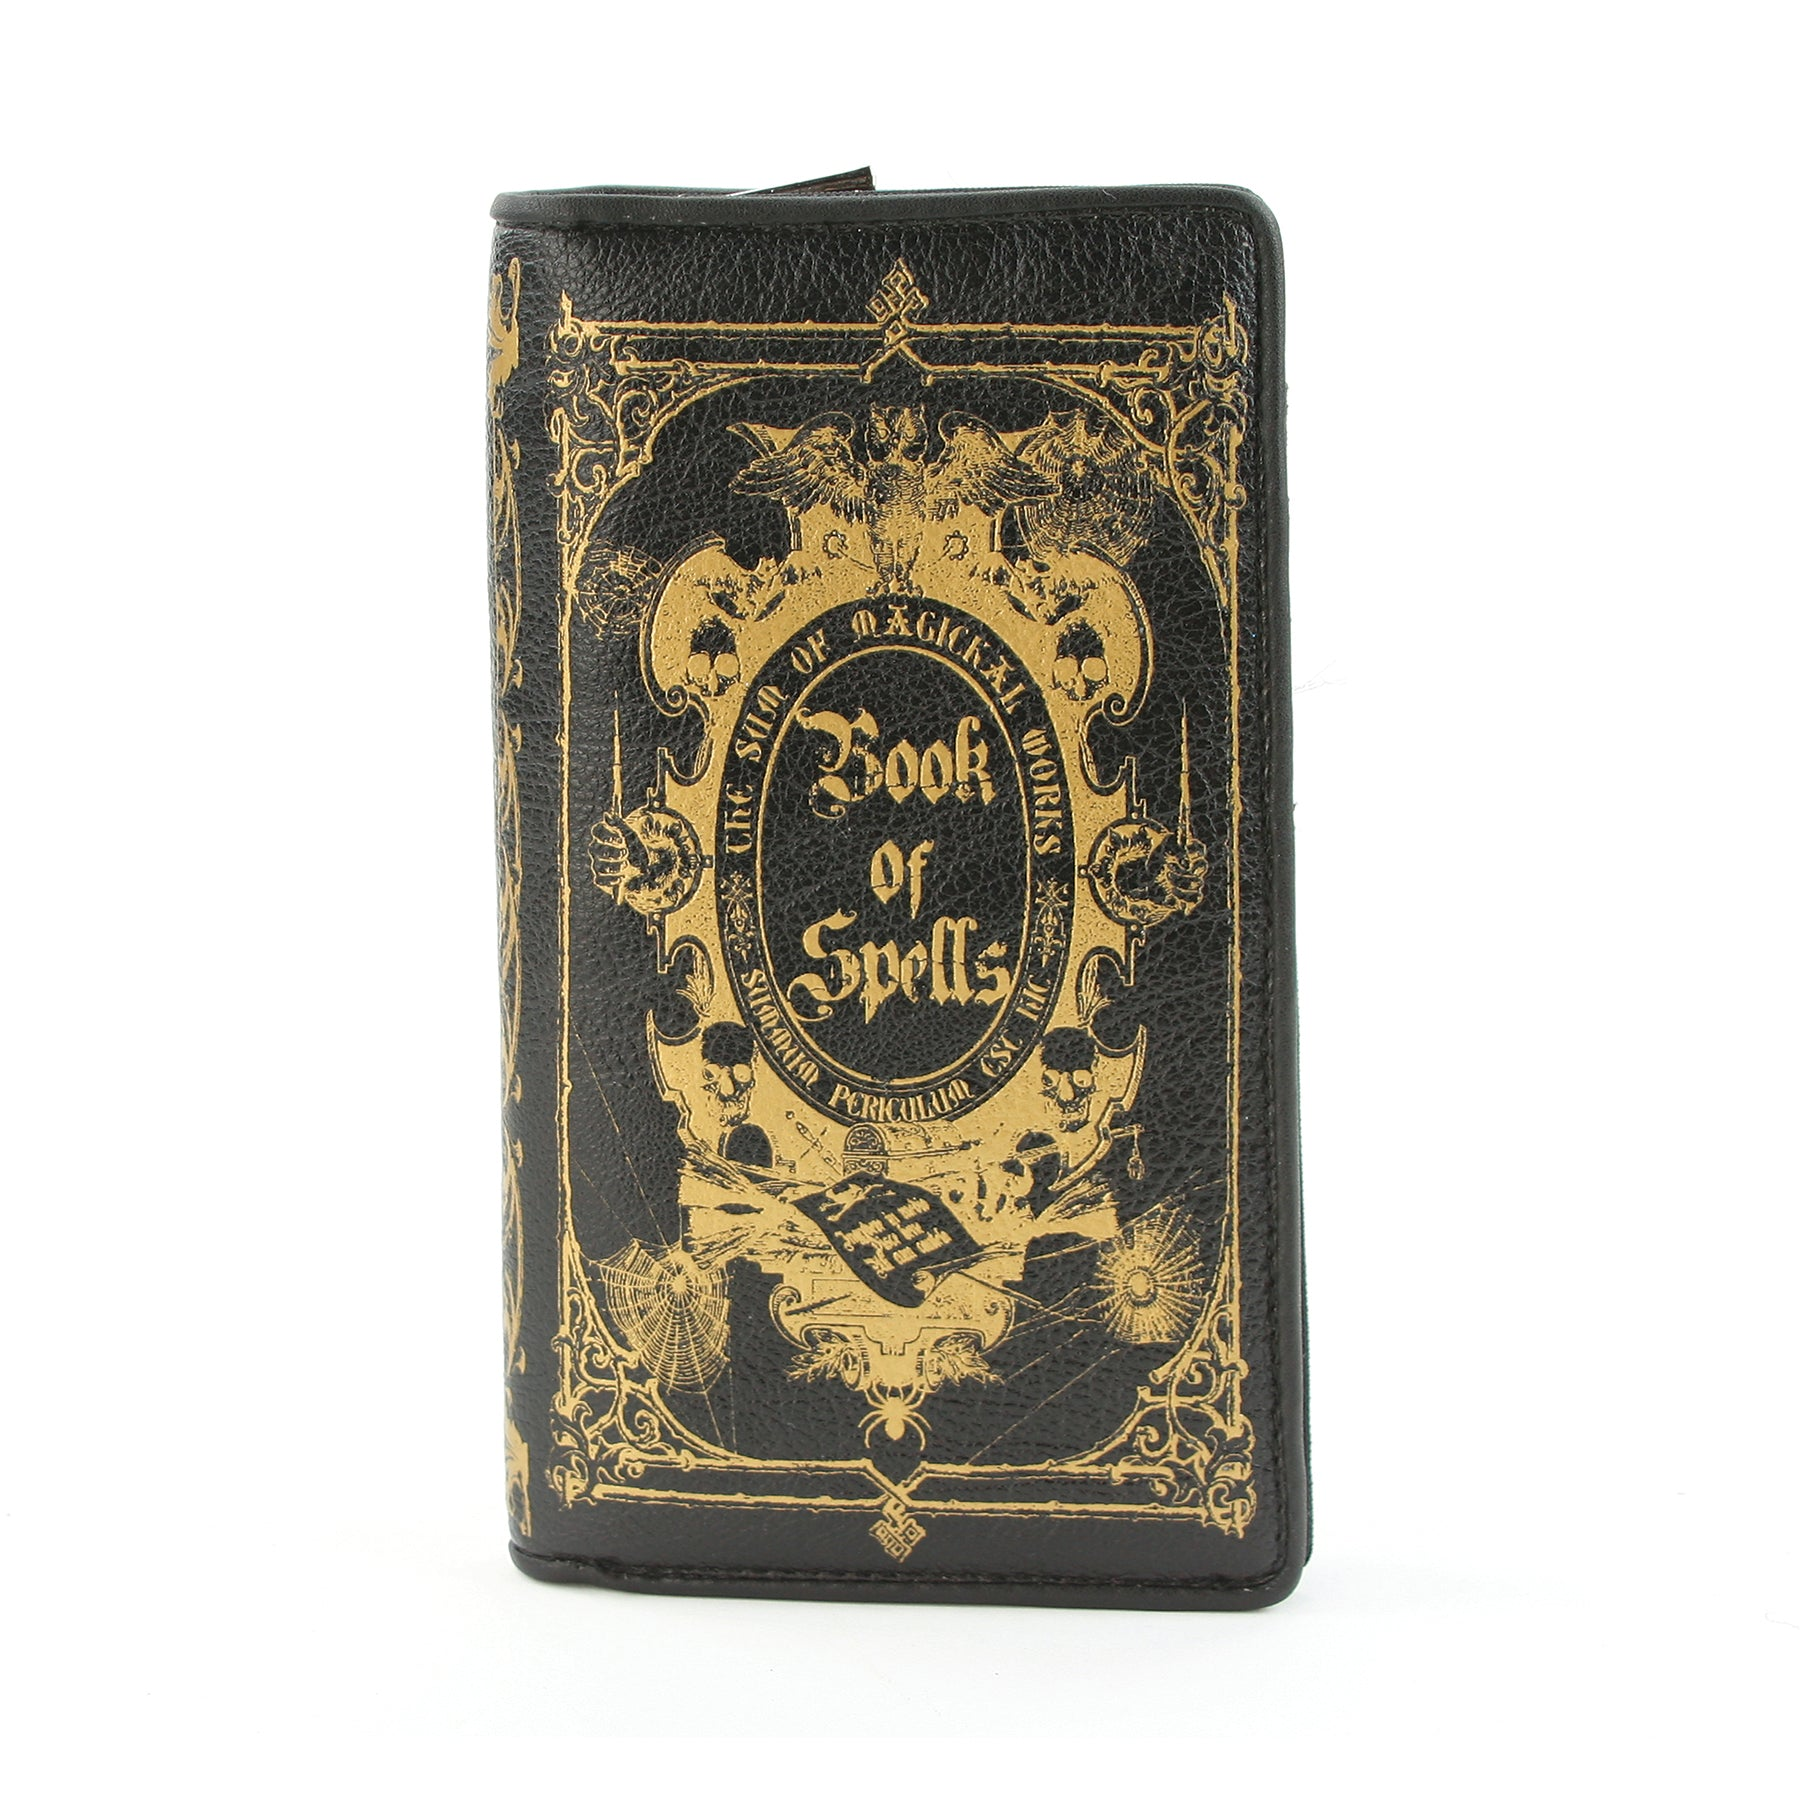 Book of Spells Wallet in Vinyl Material, closed front view